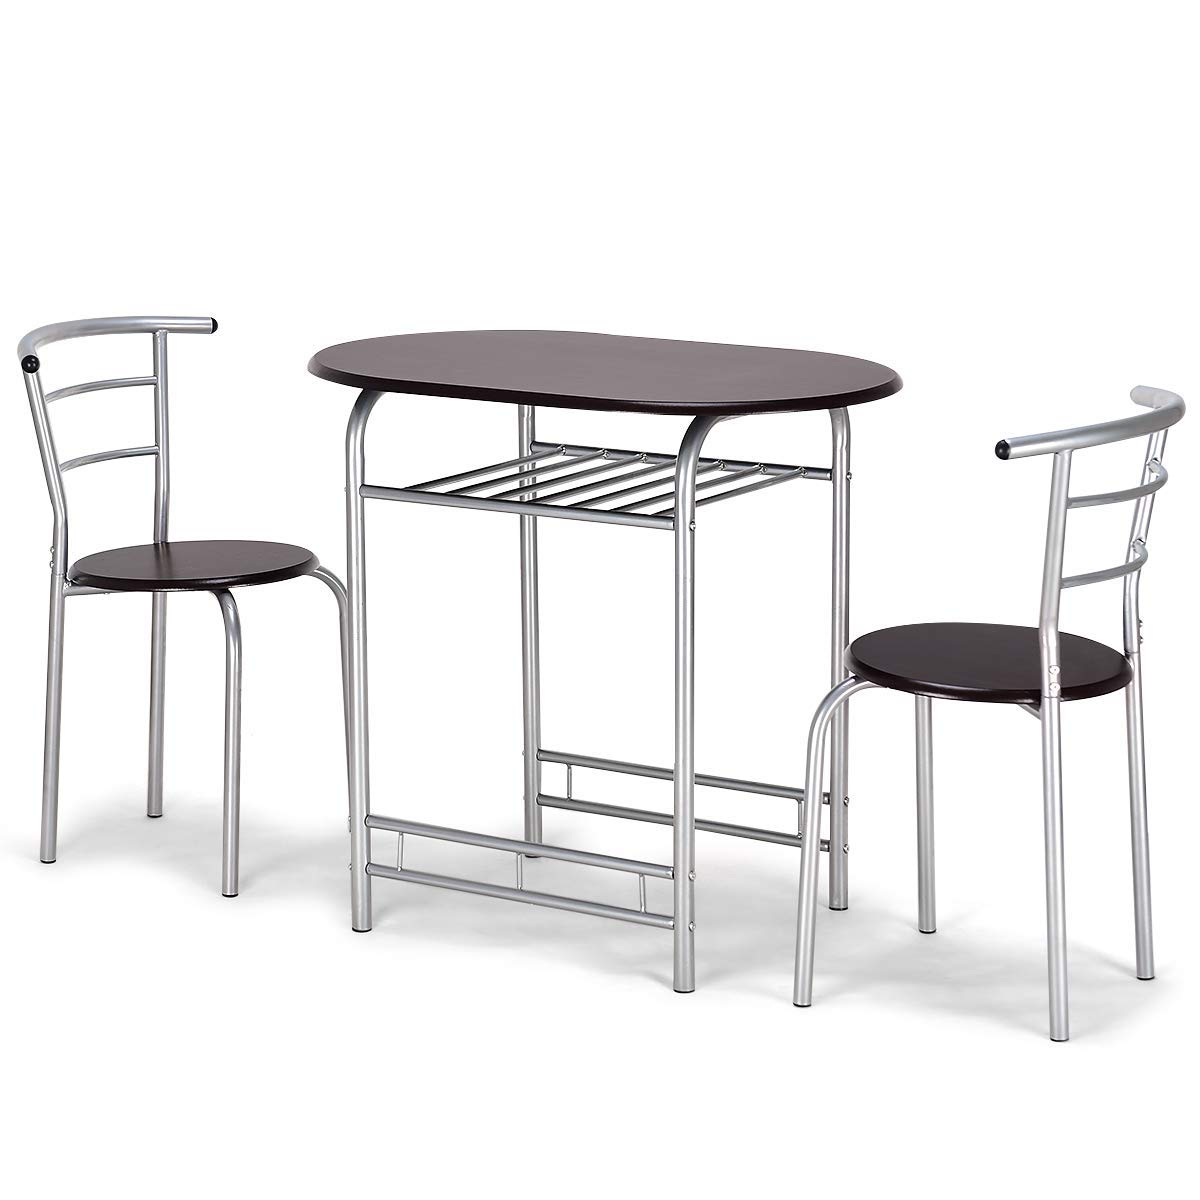 Giantex 3 PCS Bistro Dining Set Table and 2 Chairs Kitchen Furniture Pub Home Restaurant Table Chair Sets Coffee